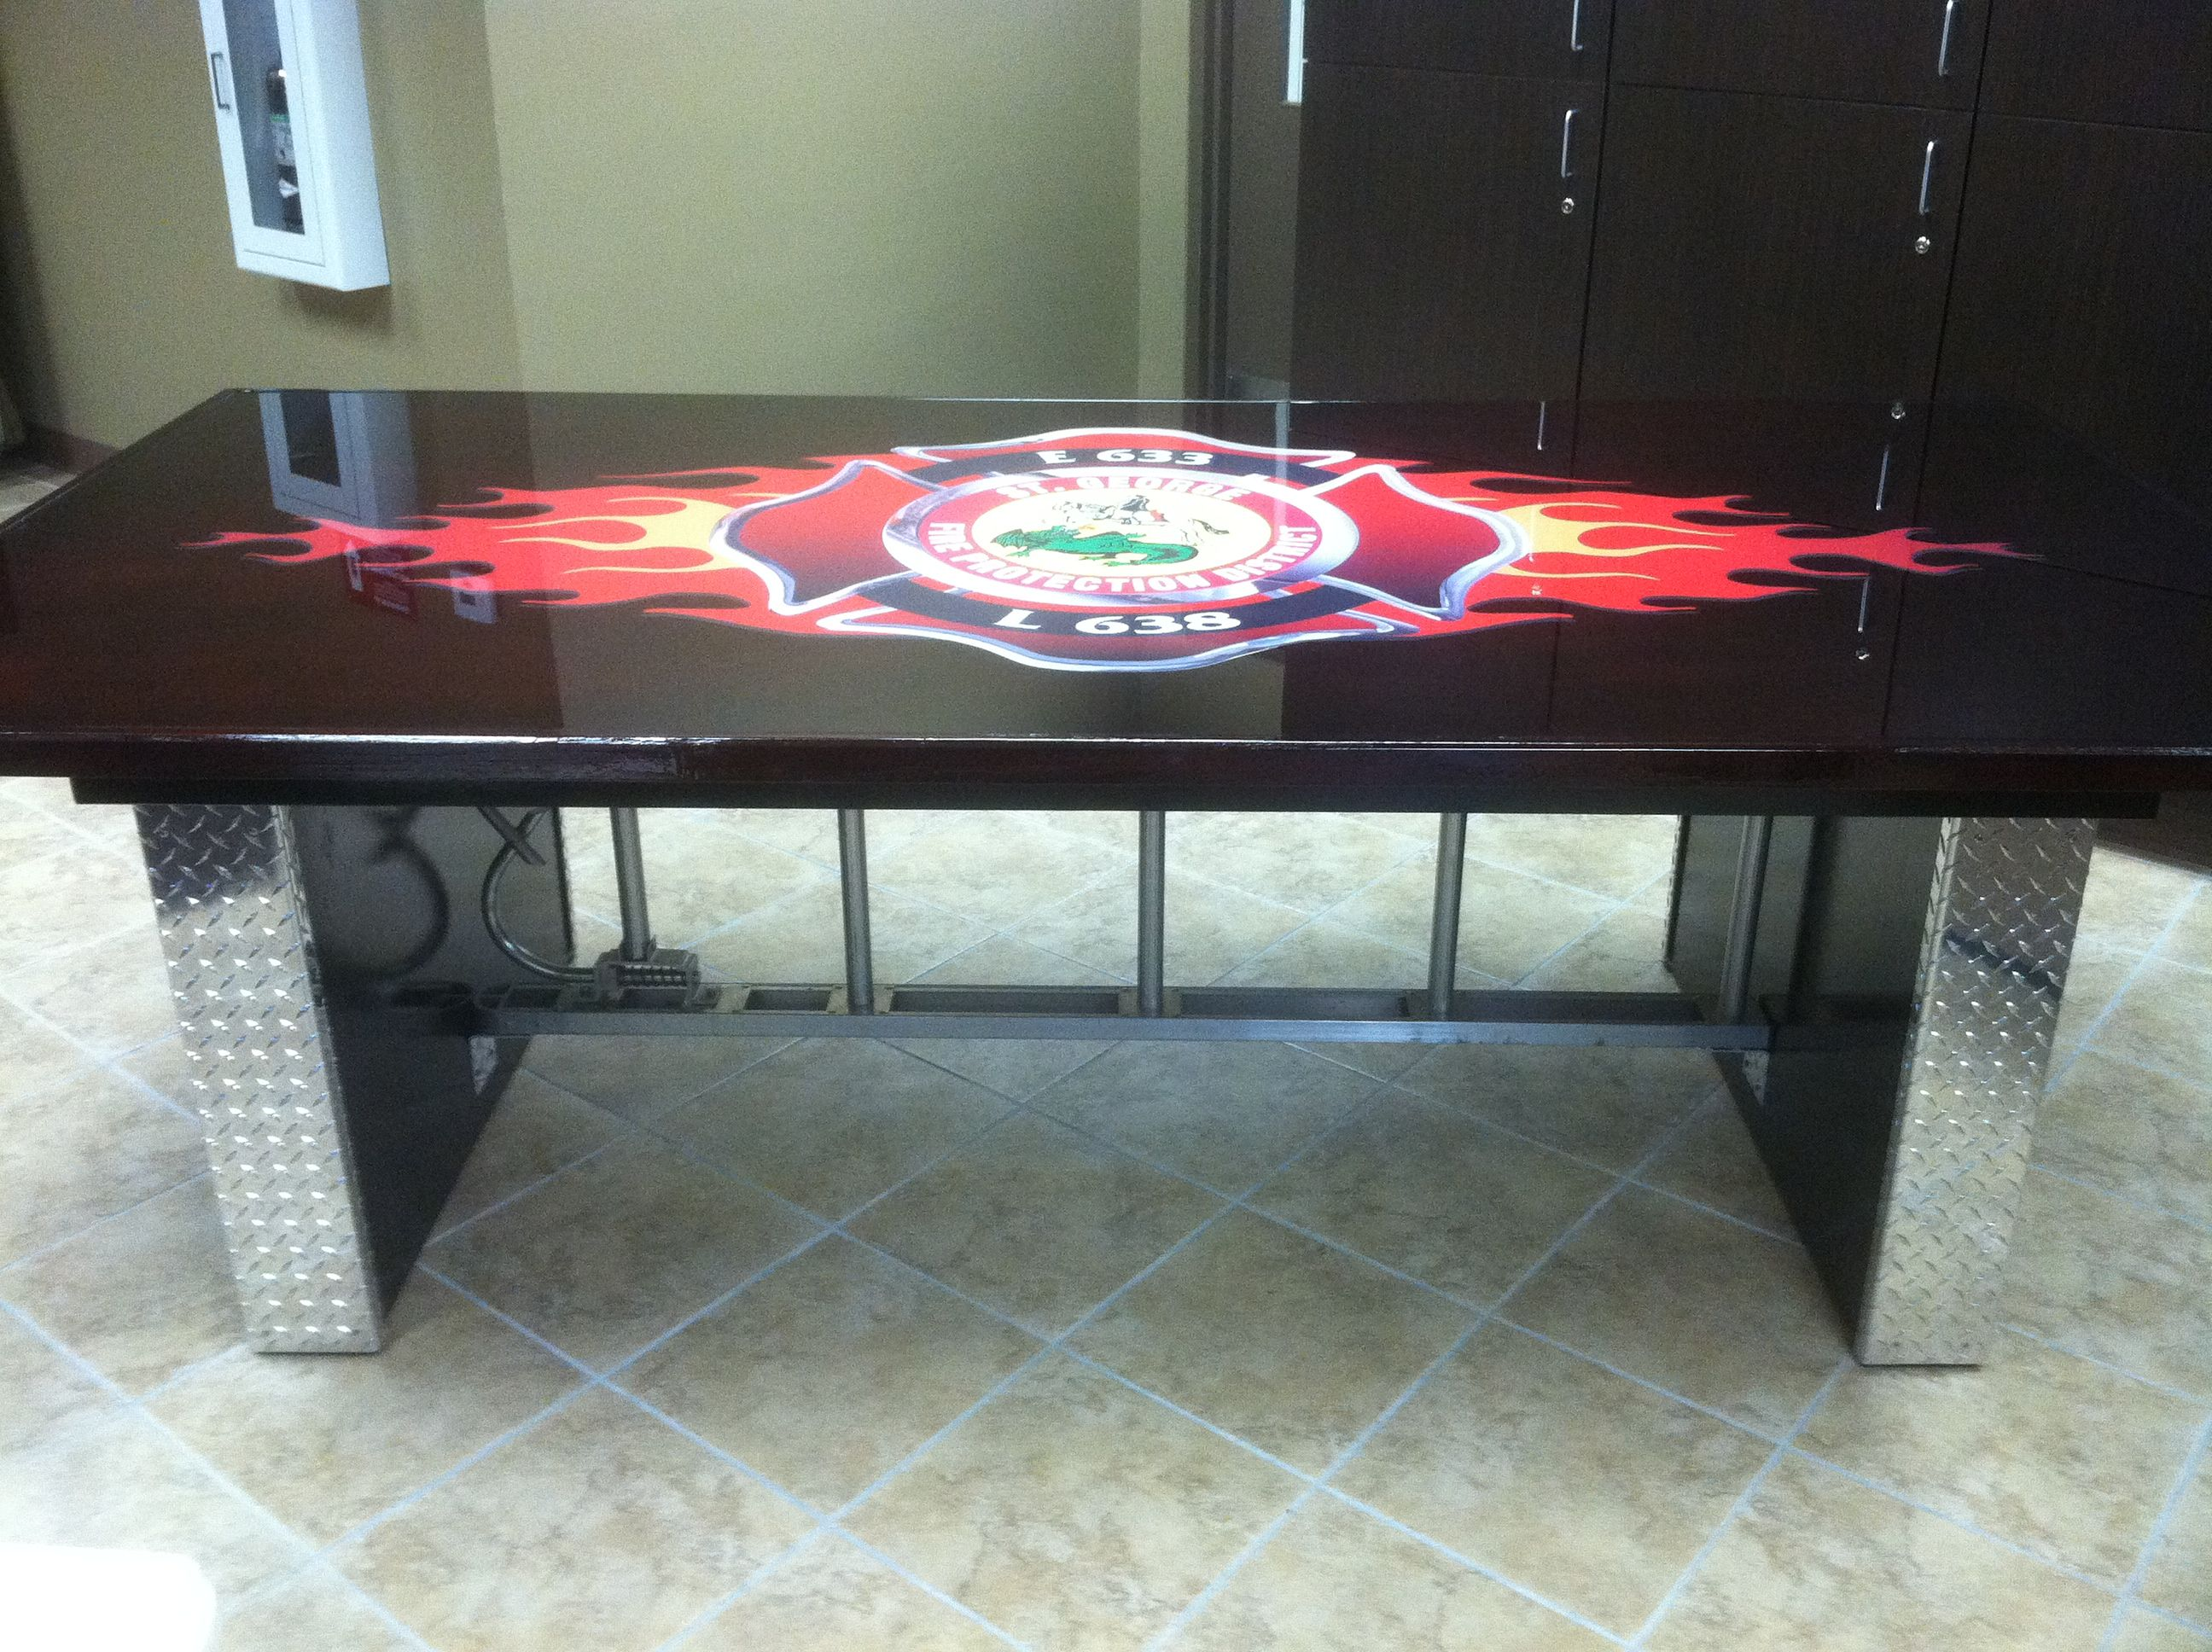 firehouse tables custom kitchen tables Custom table made for the firehouse Roof ladder underneath with diamond plate caps on the